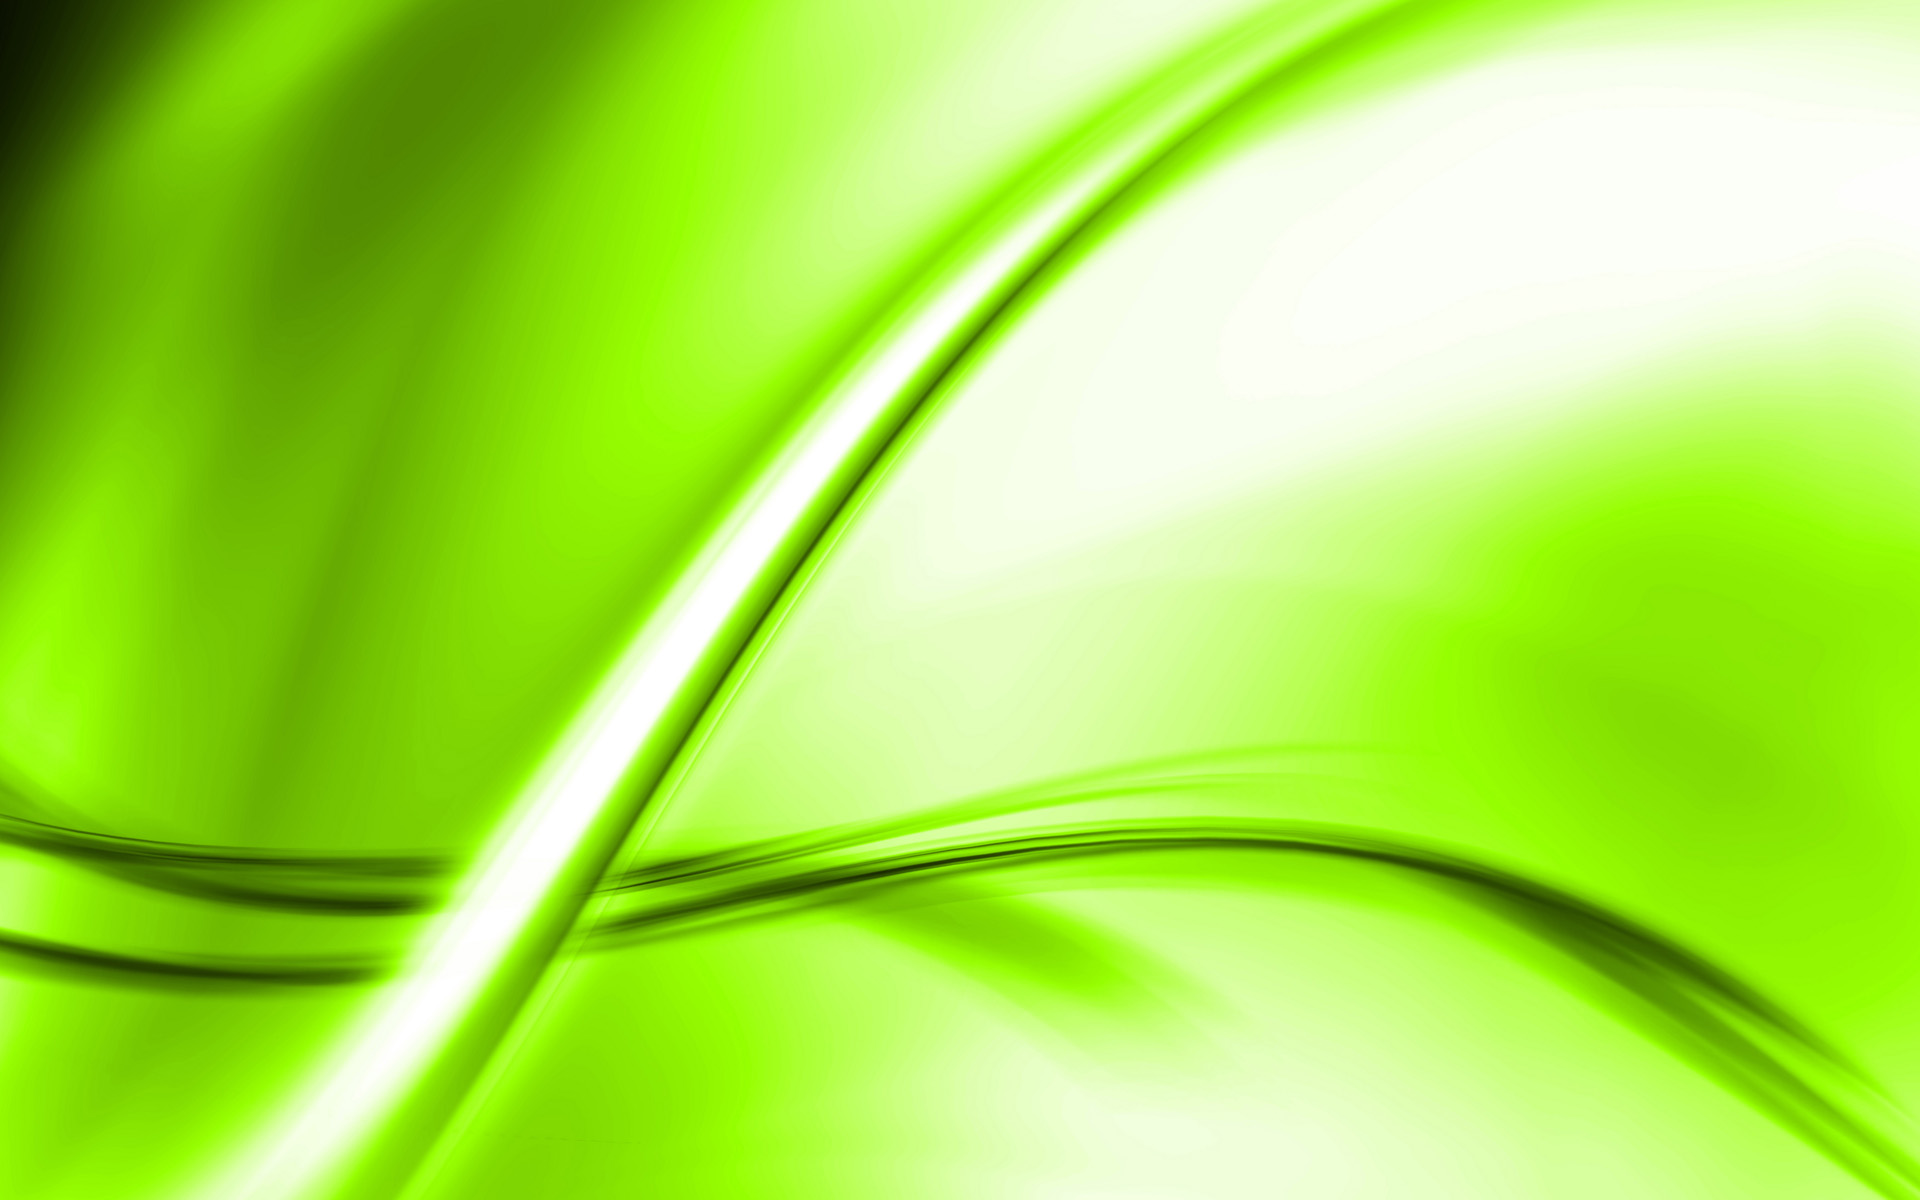 Cool Wallpaper Green Birthday - light-green-abstract-wallpaper-24338-24998-hd-wallpapers  Pictures_161965 .jpg